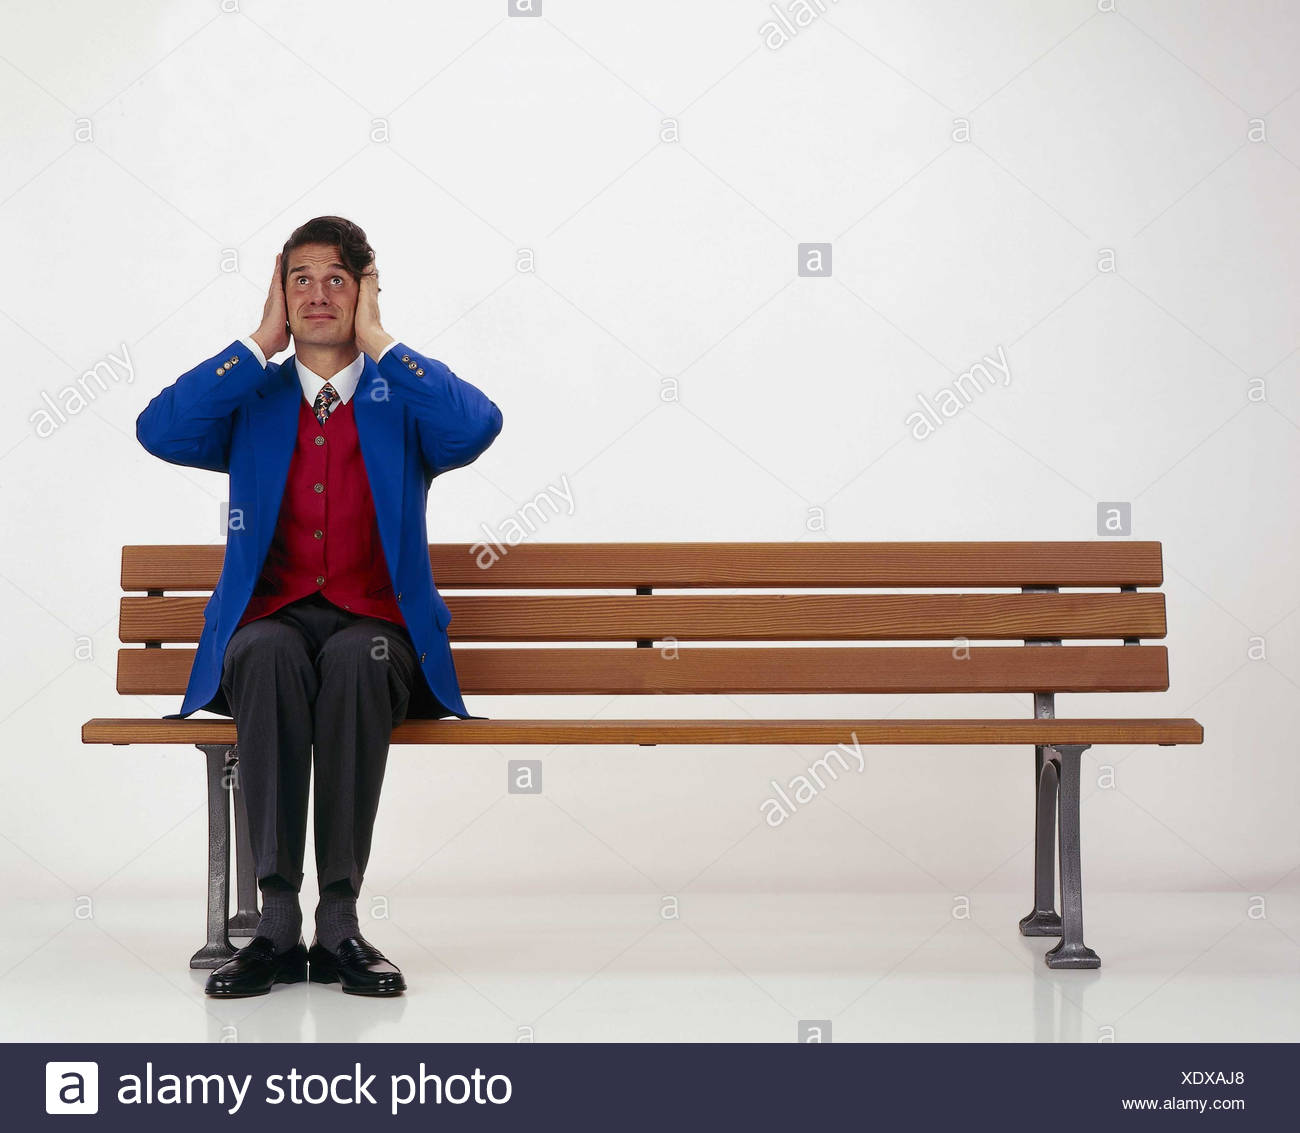 Man, bank, sit, keep closed gesture, ears inside, studio, park-bench, noise, loudly, stress, stressed, overallocated, thrashing, expression - Stock Image